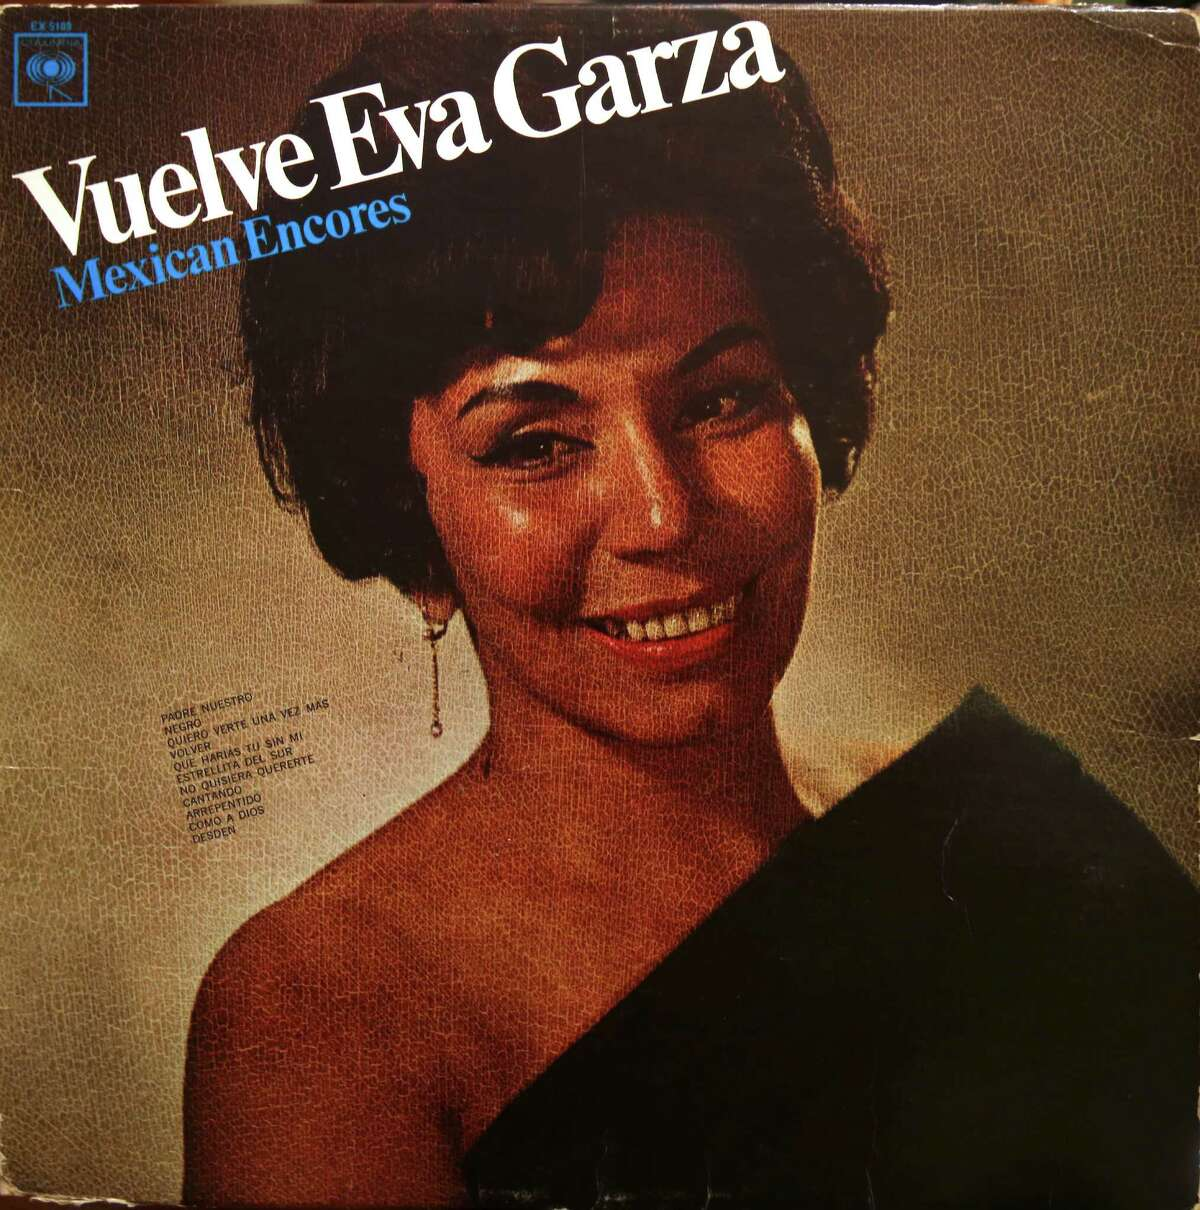 The Esperanza Peace and Justice Center is celebrating the life of singer and actress Eva Garza, seen here on one of her album covers, who's story has been almost been lost to history. Eva Garza was a singer and actress and during World War II she had her own CBS radio show.